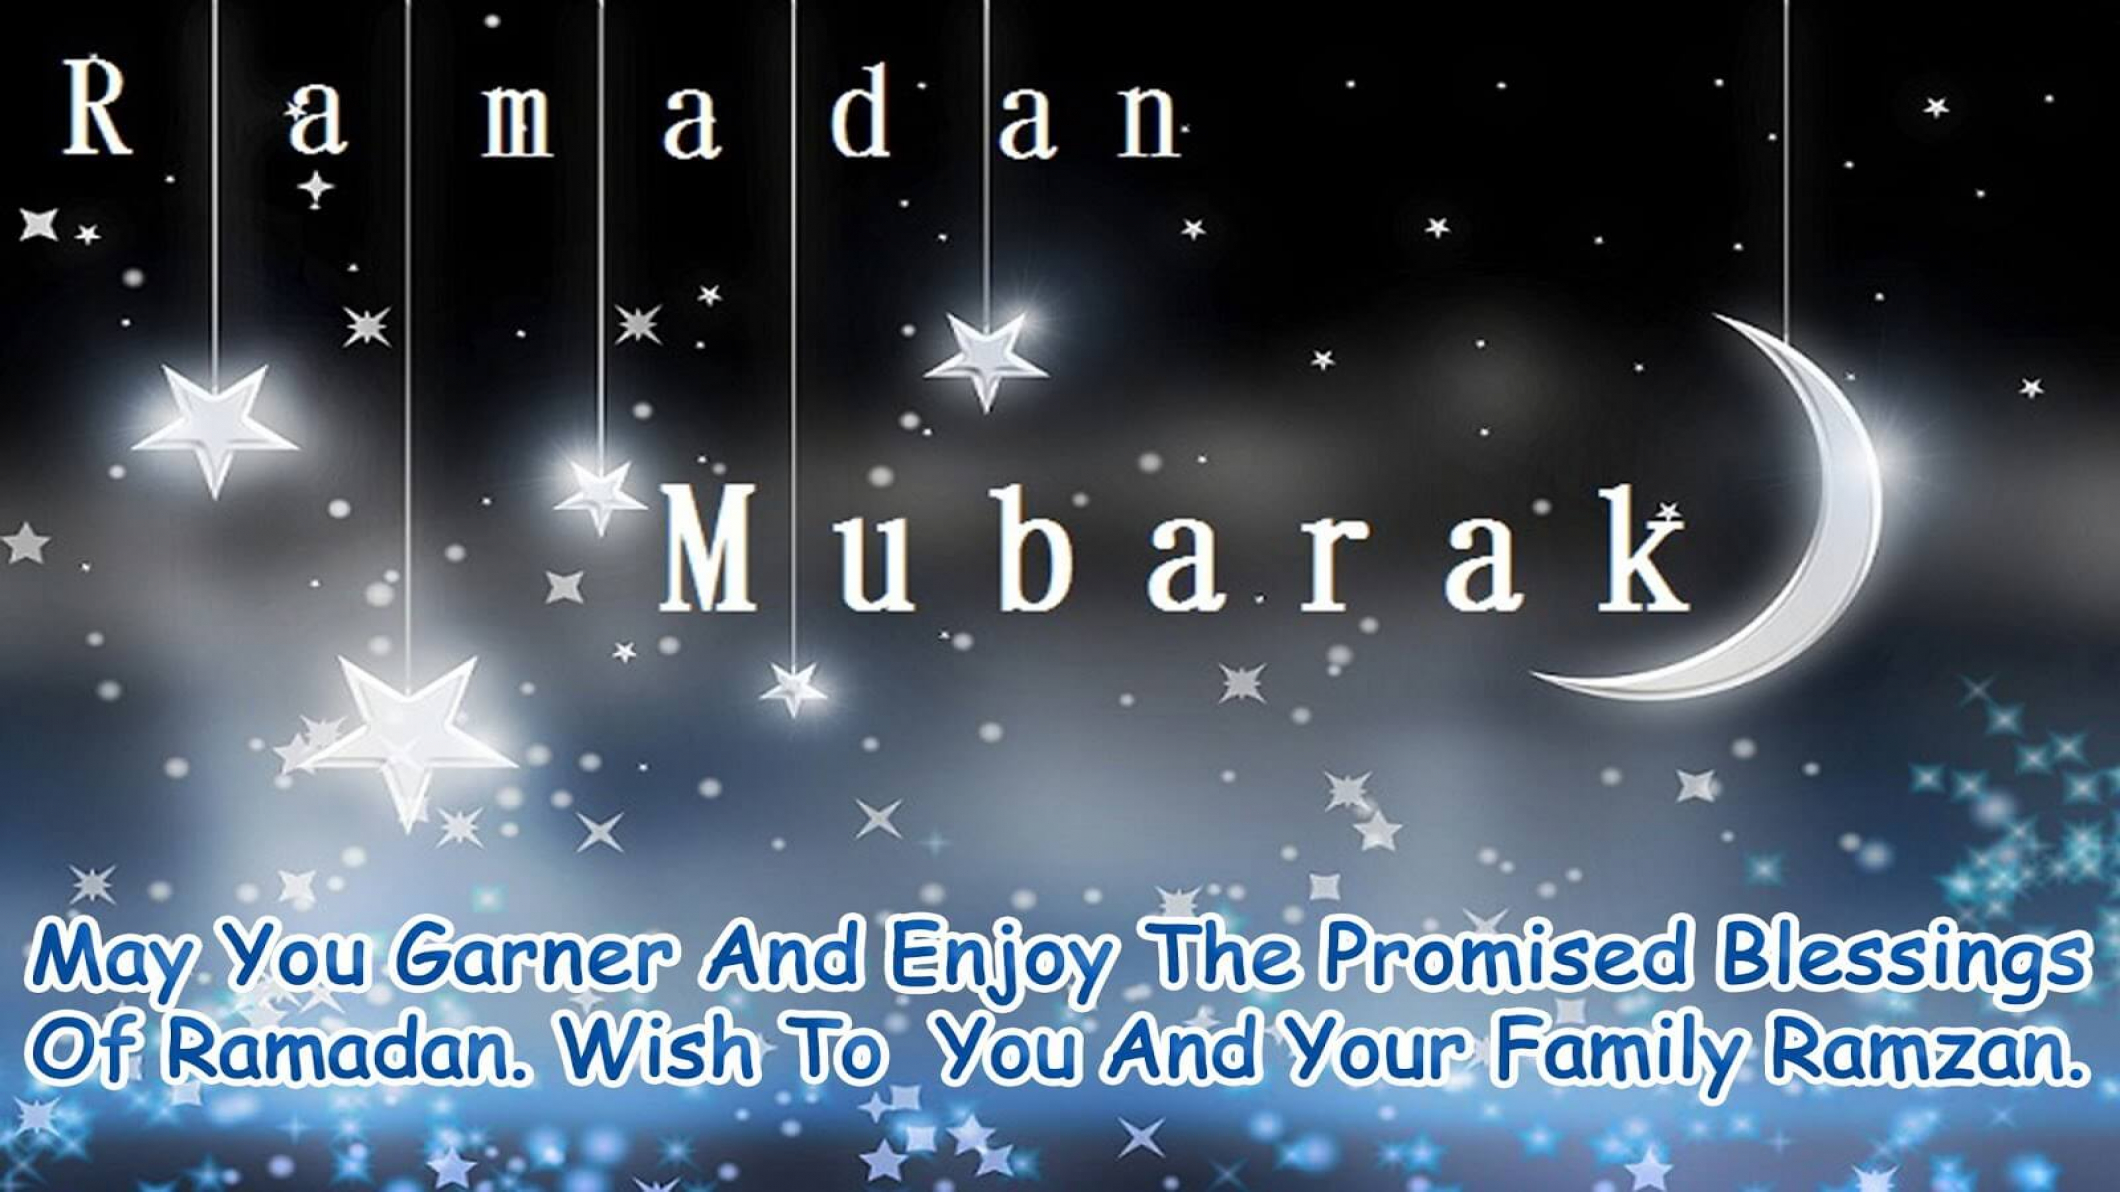 Ramzan Kareem Hd Wallpaper With Wishes Quotes for Ramadan Wallpaper Quotes  165jwn